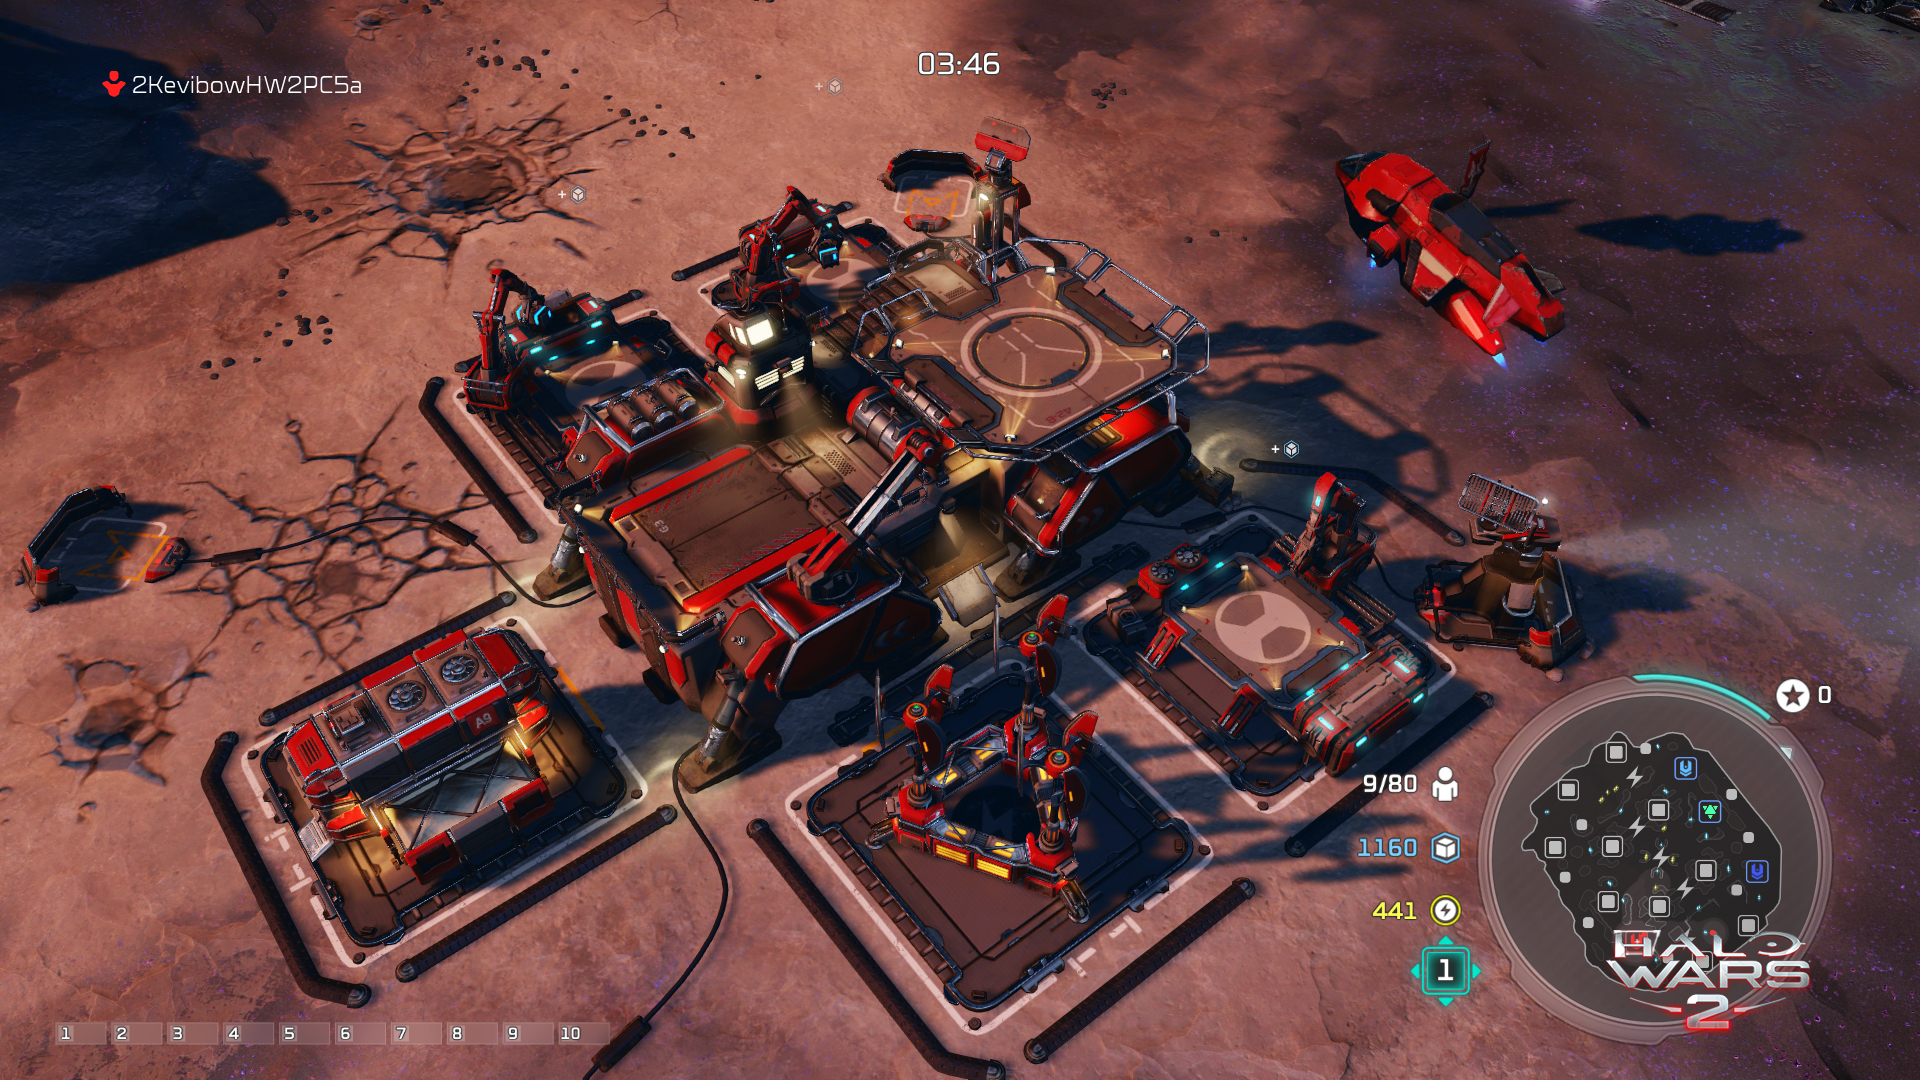 Halo Wars 2 Hands-on Preview